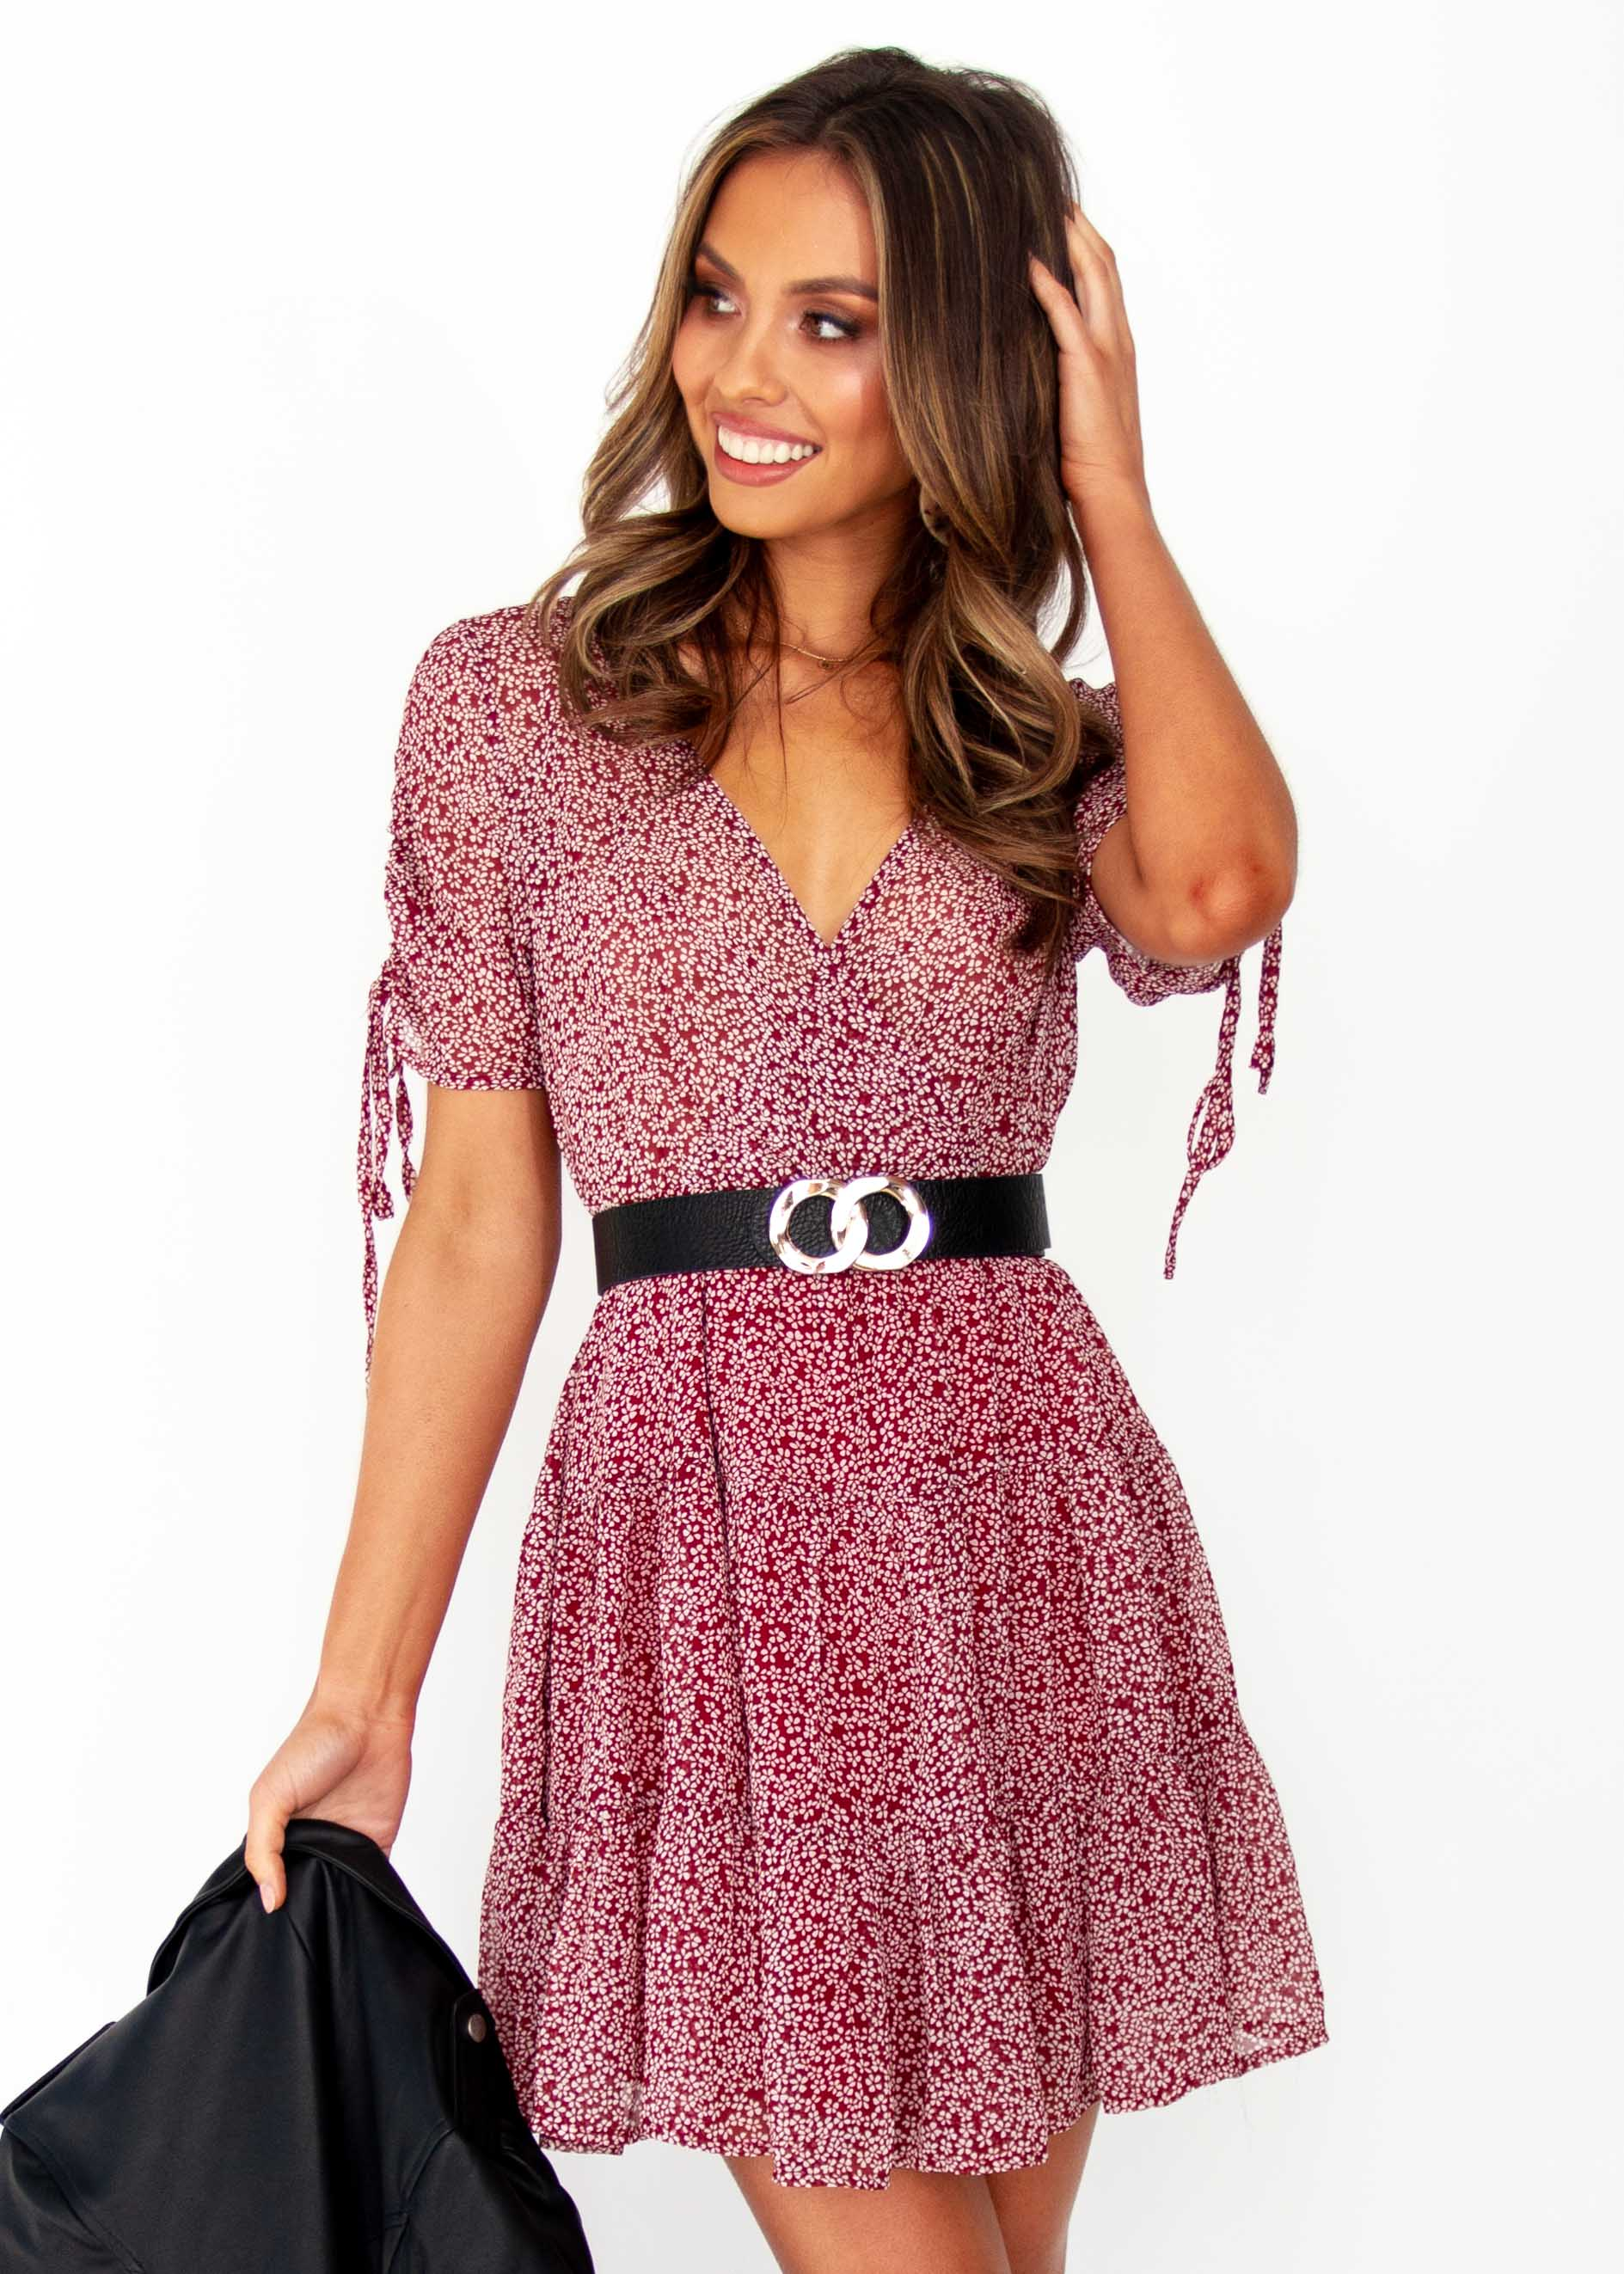 Women's Casablanca Swing Dress - Wine Floral Print